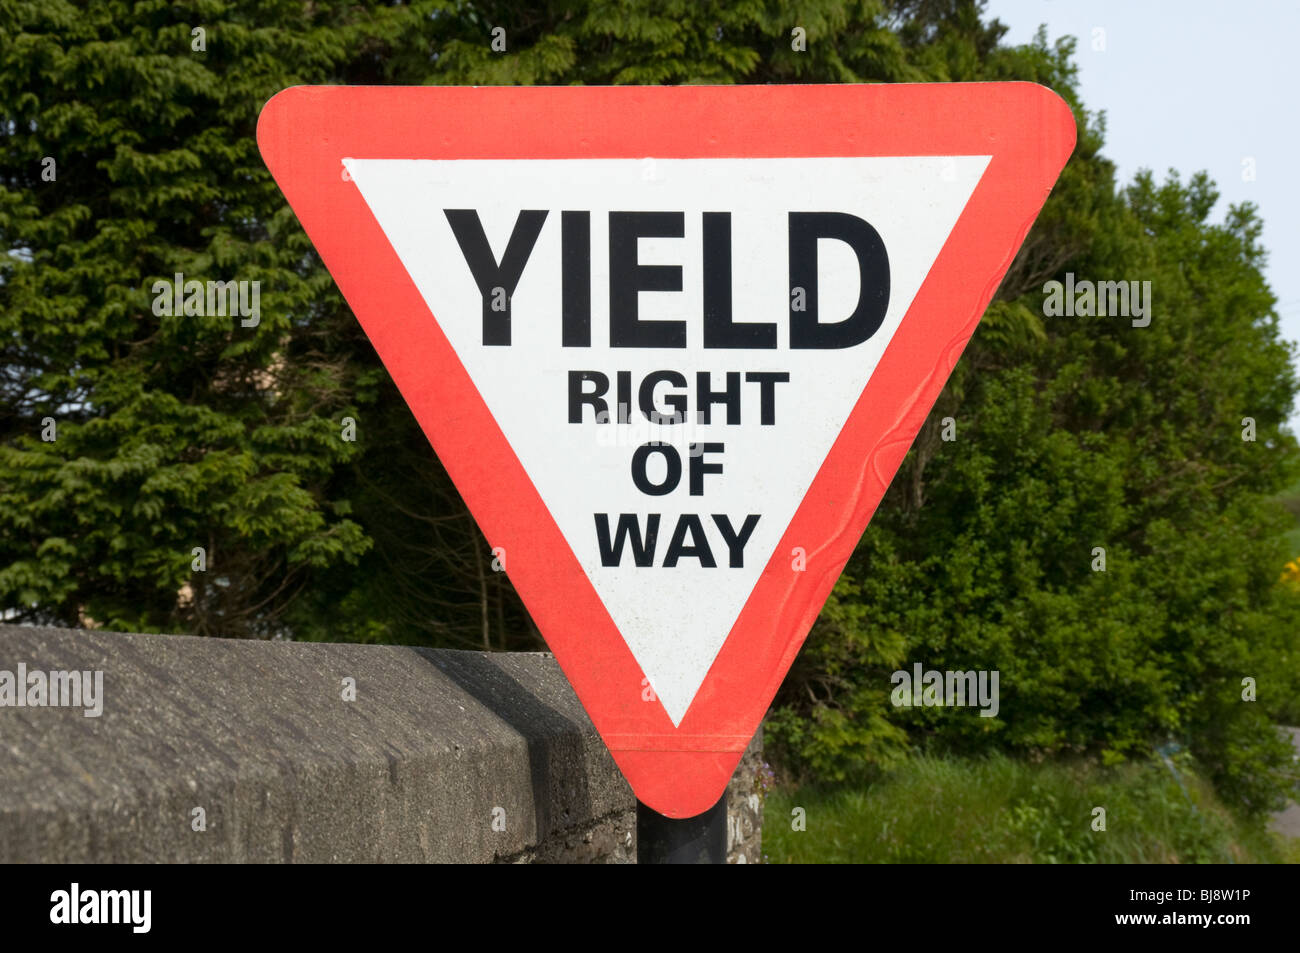 Road sign in County Cork, Ireland - Stock Image